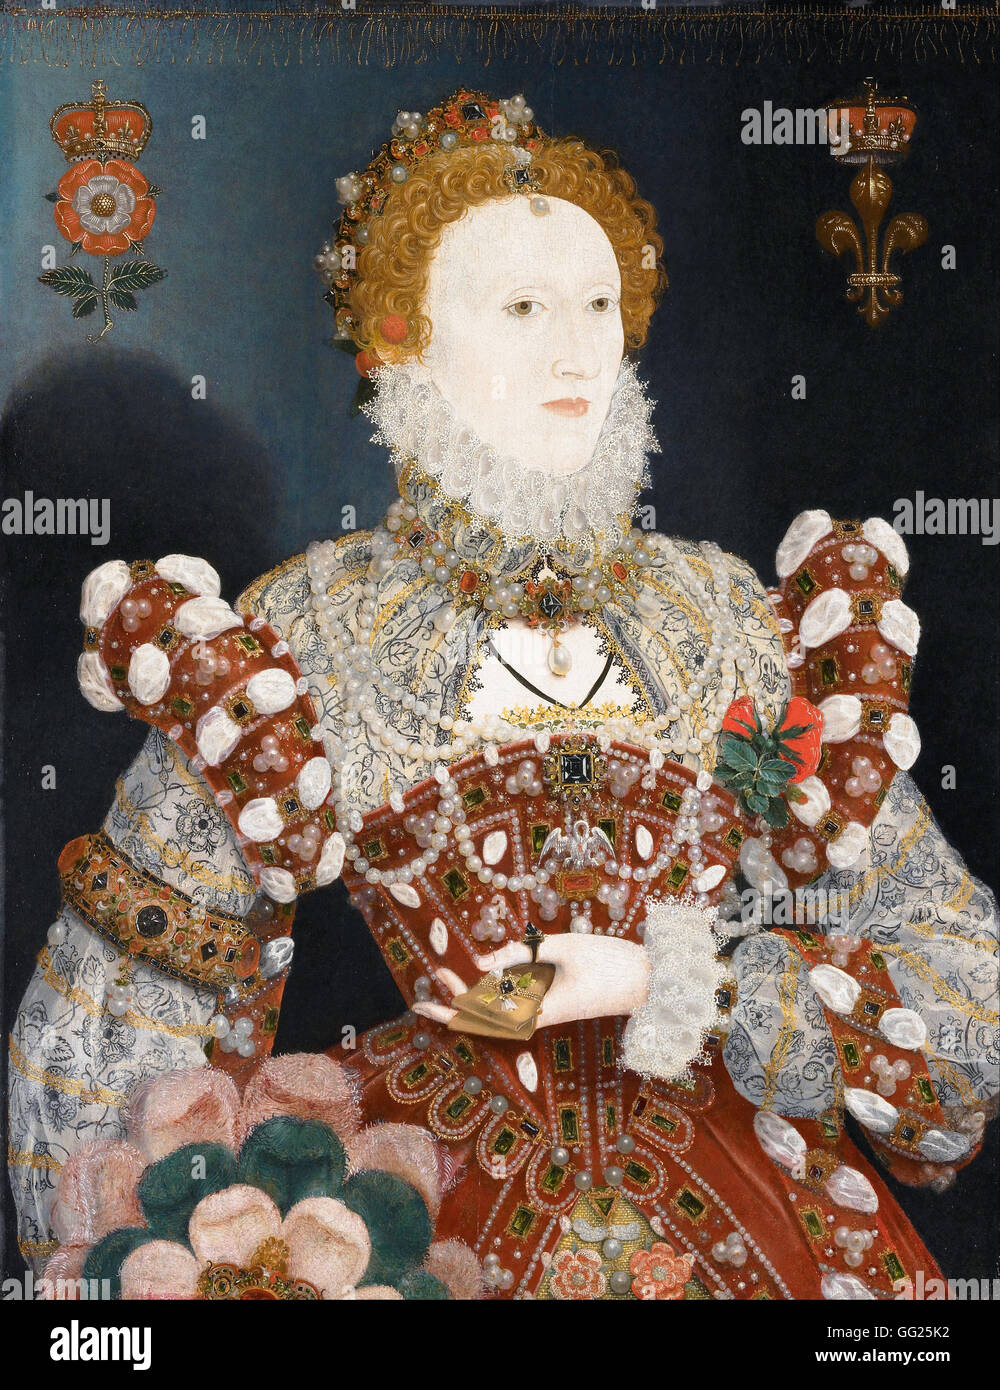 Sessel Queen Elizabeth Queen Elizabeth I Portrait Photos Queen Elizabeth I Portrait